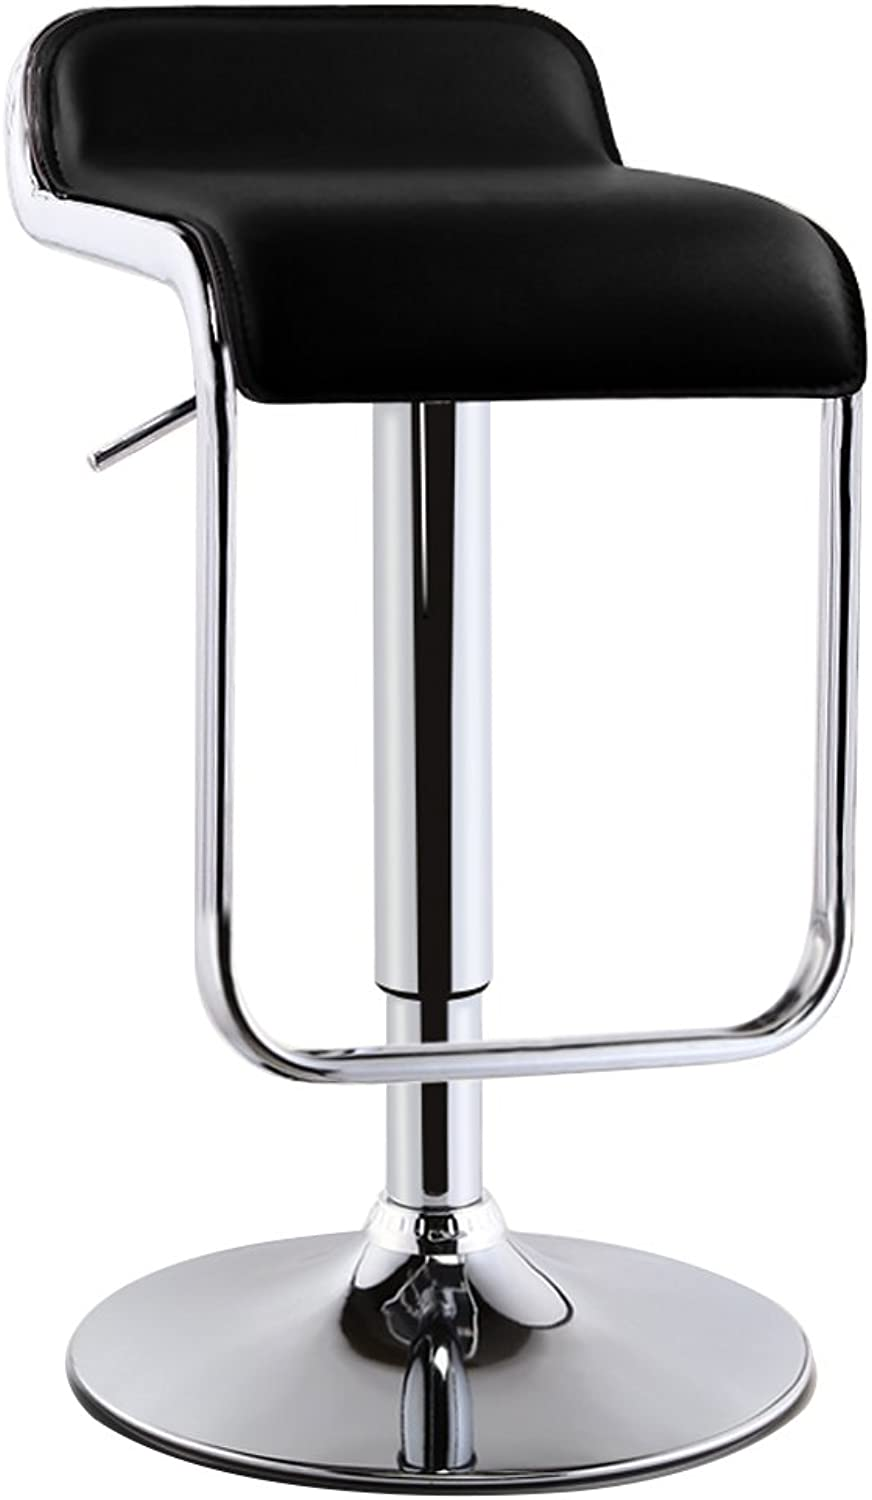 SUNHAI PU Leather Adjustable Swivel Gas Lift Bar Stools,360 Degree redary,Max Weight Capacity 130kg,12 colors (color   Black, Size   38.5cm)